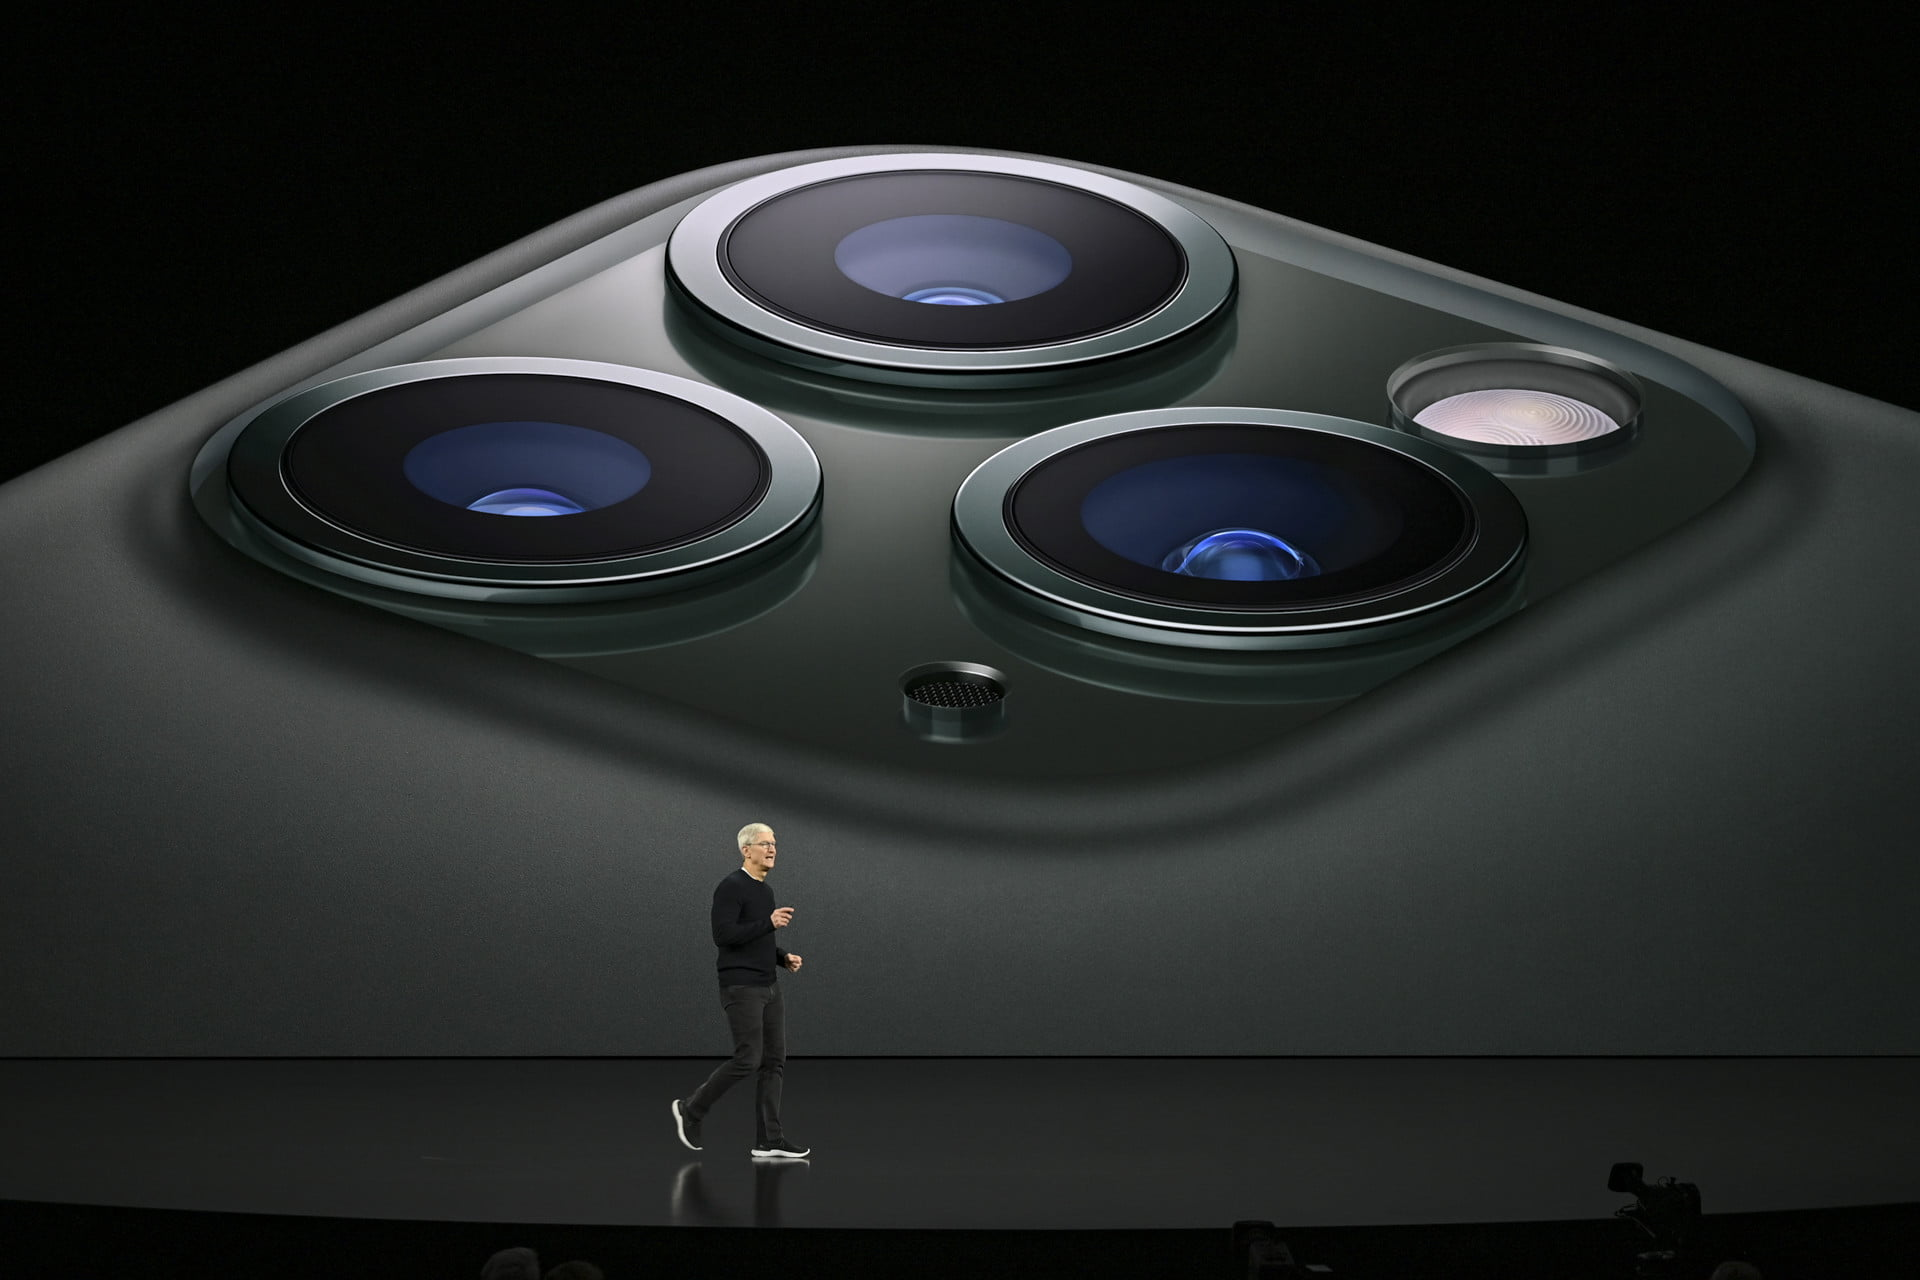 The iPhone 11 Pro's multiple camera design is triggering people's trypophobia